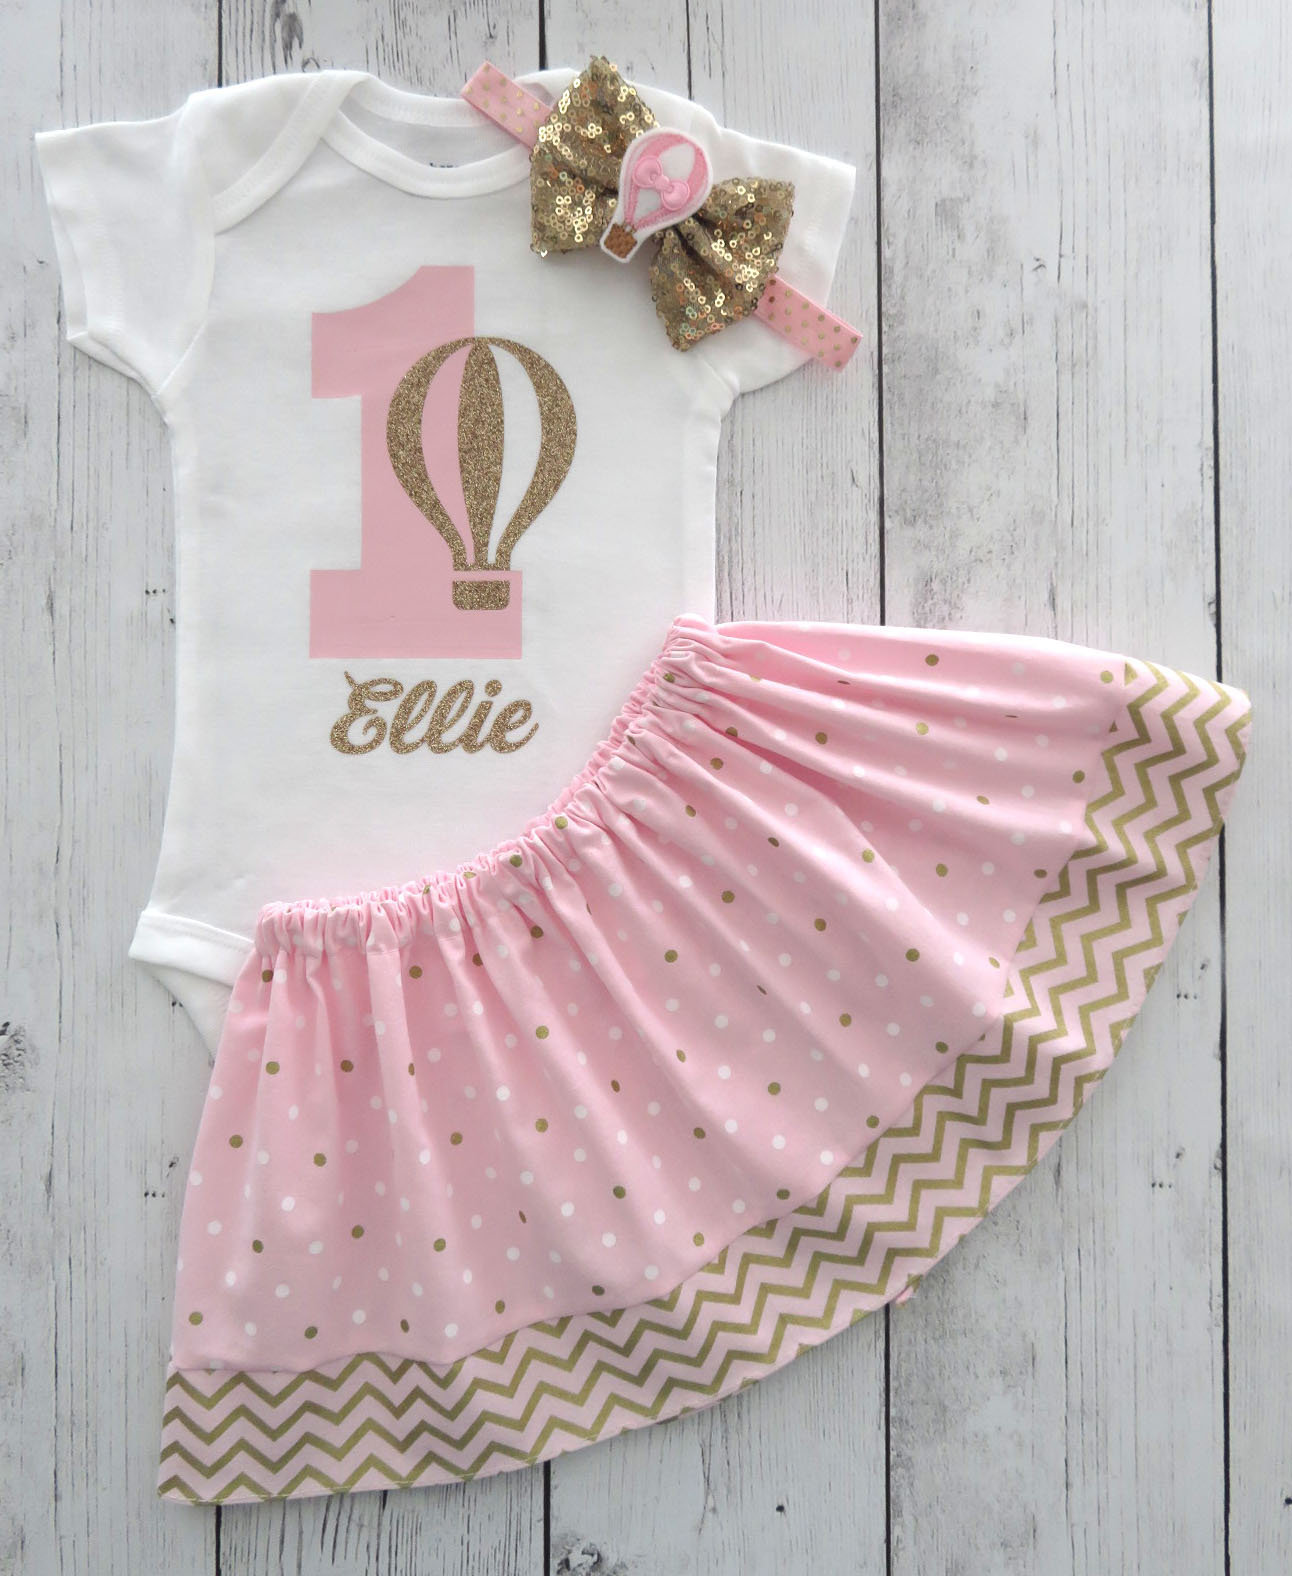 Hot Air Balloon First Birthday Outfit in Pink and Gold - girl 1st birthday outfit, hot air balloon birthday party, 1st bday outfit girl